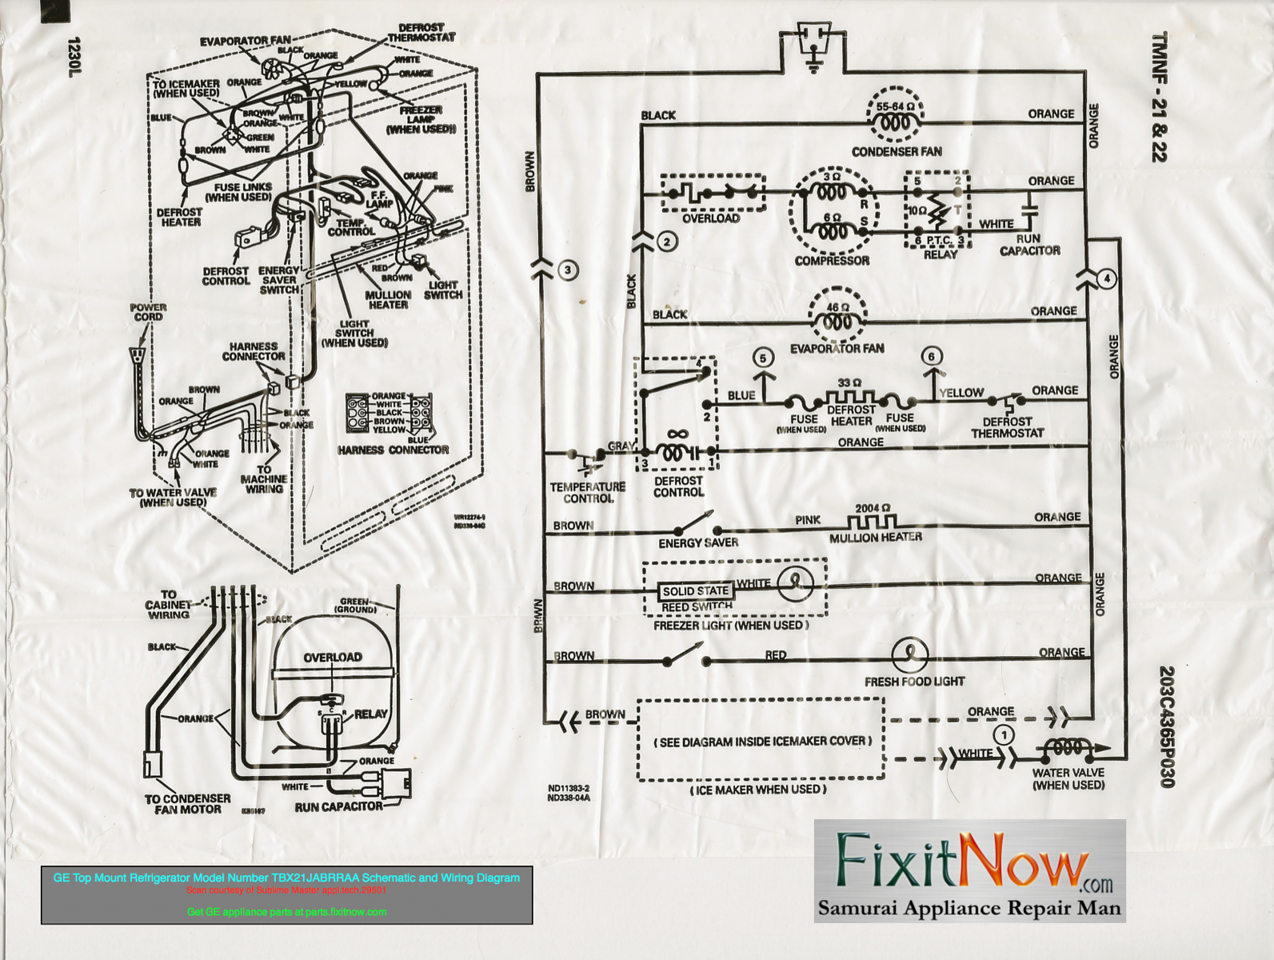 4904374061_e8eb3df6c6_o X2 wiring diagrams and schematics appliantology ge wiring diagrams at webbmarketing.co